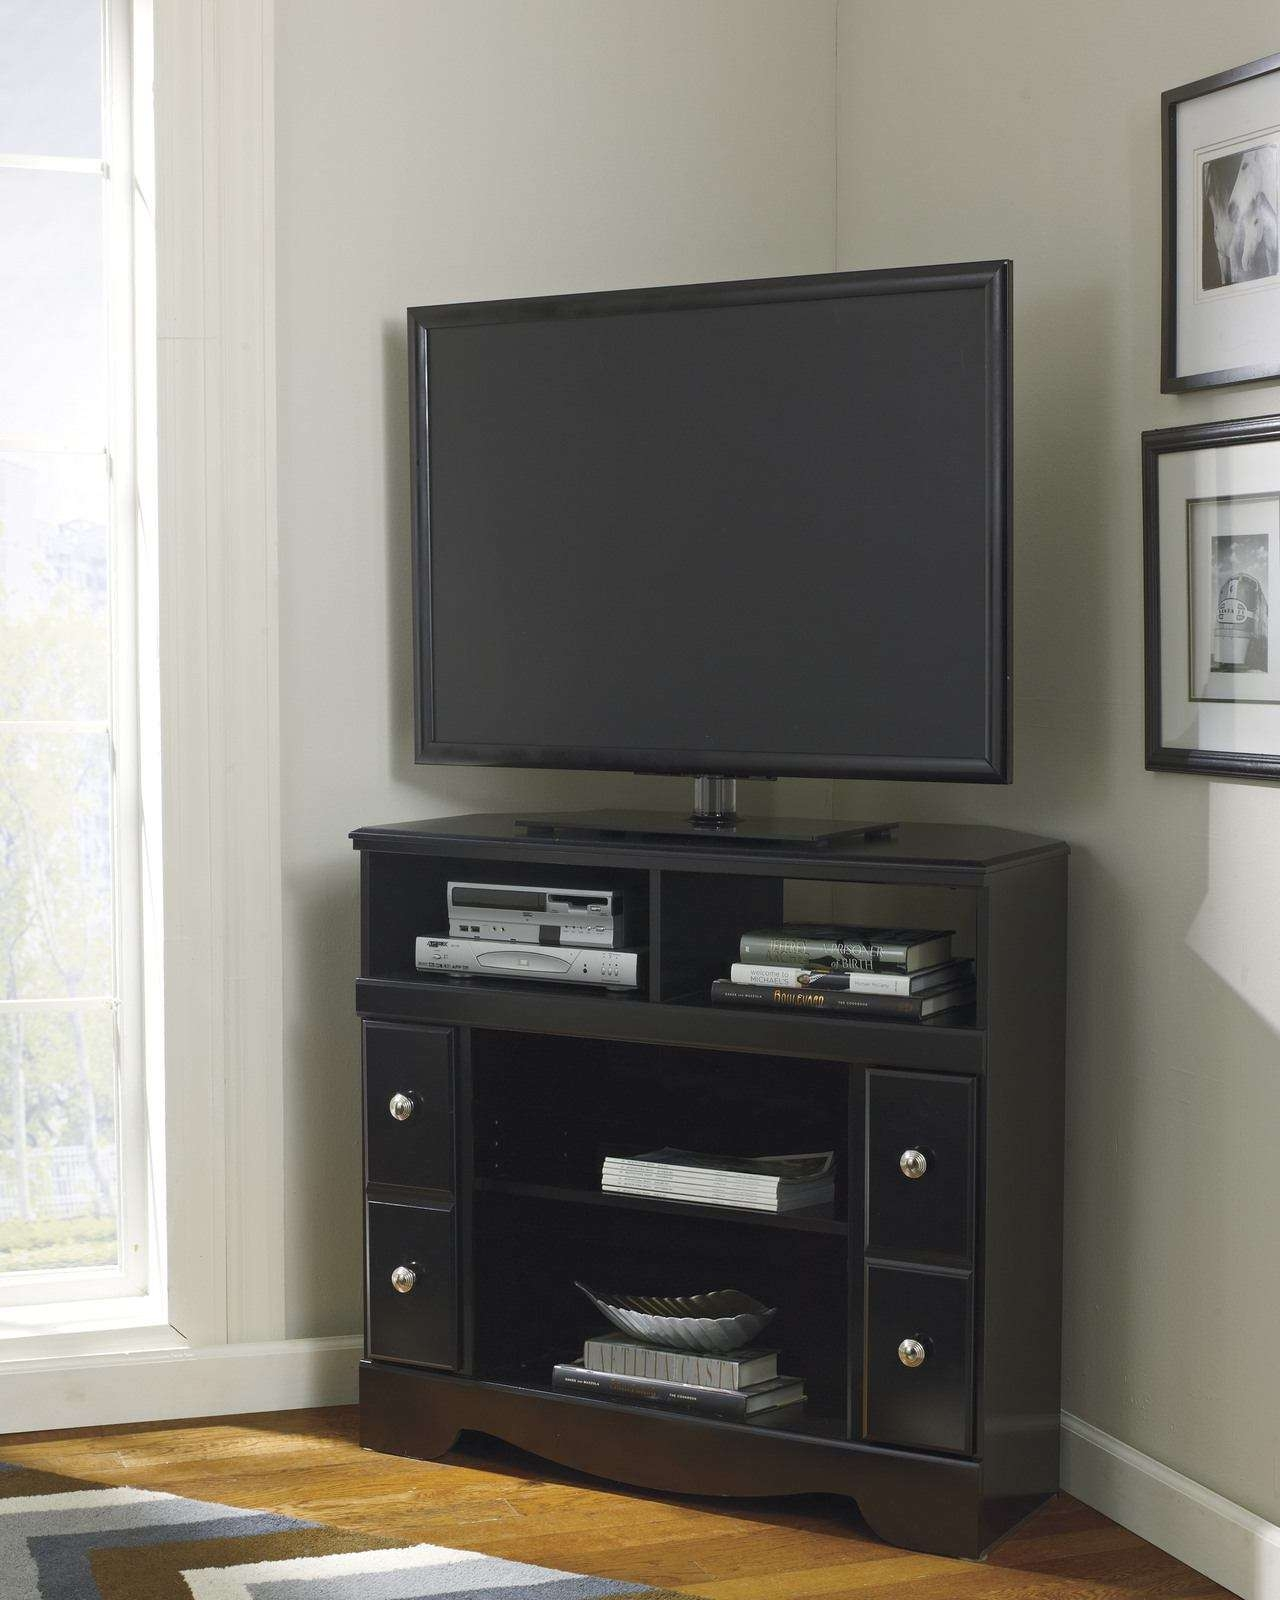 Corner Tv Stand With Fireplace Option In Black W271 12 Inside Cornet Tv Stands (View 3 of 15)